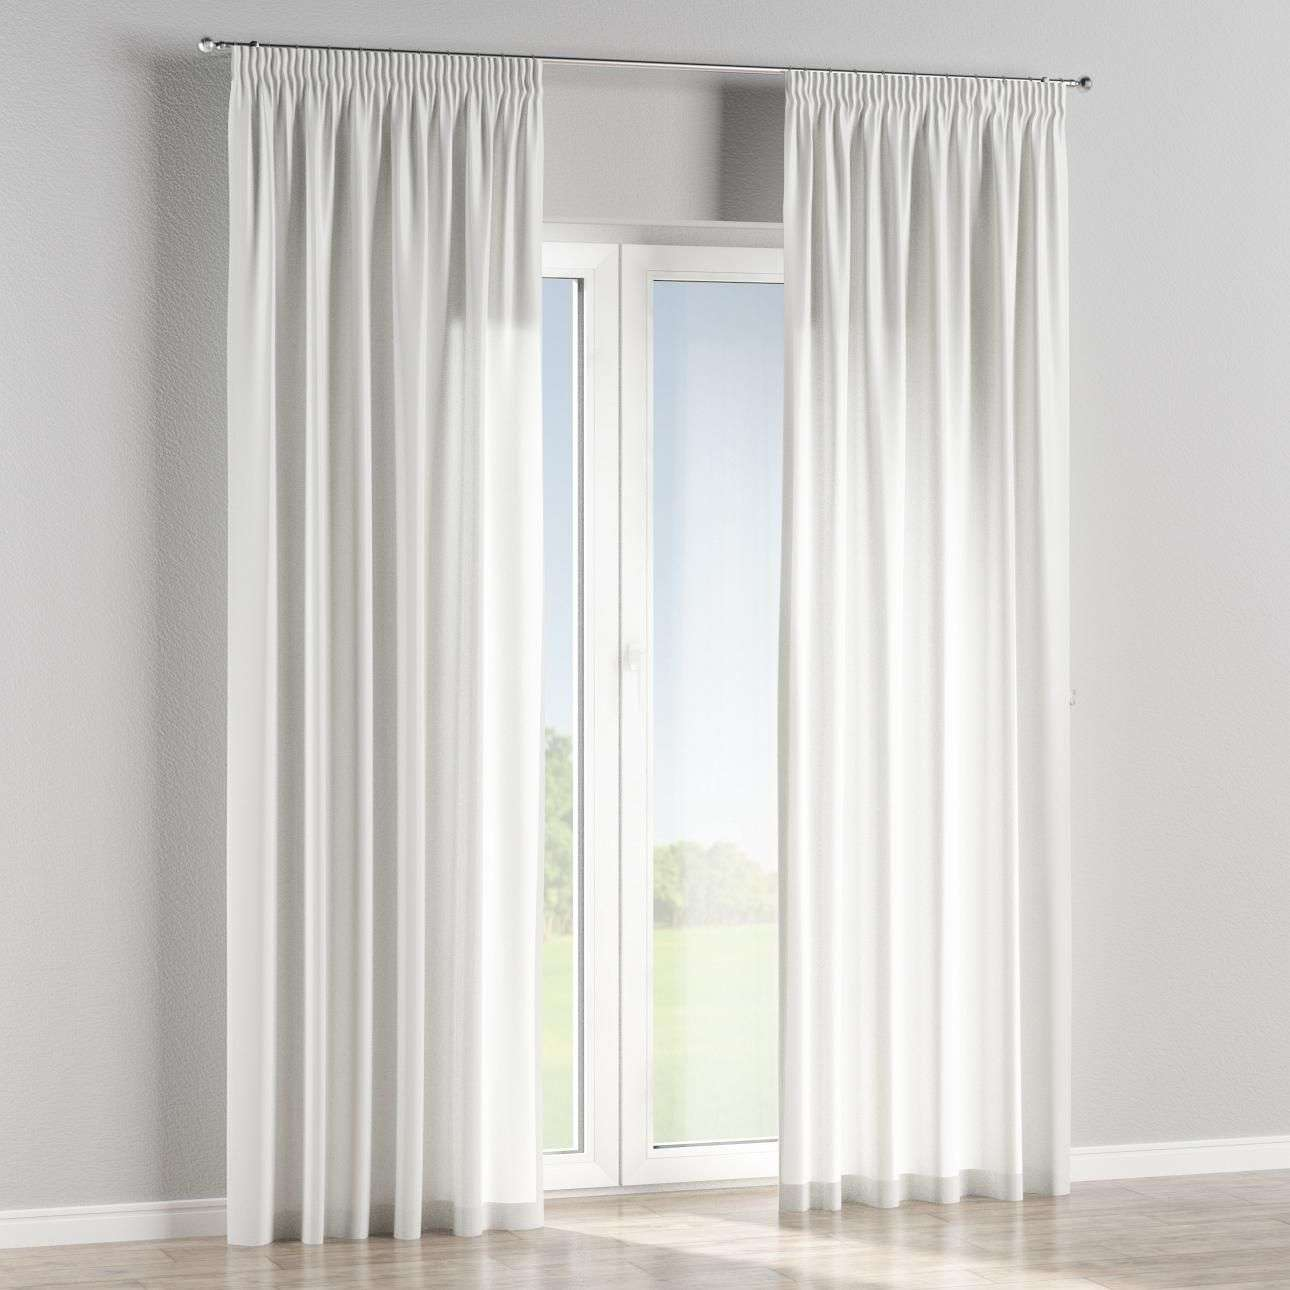 Pencil pleat lined curtains in collection Norge, fabric: 150-19